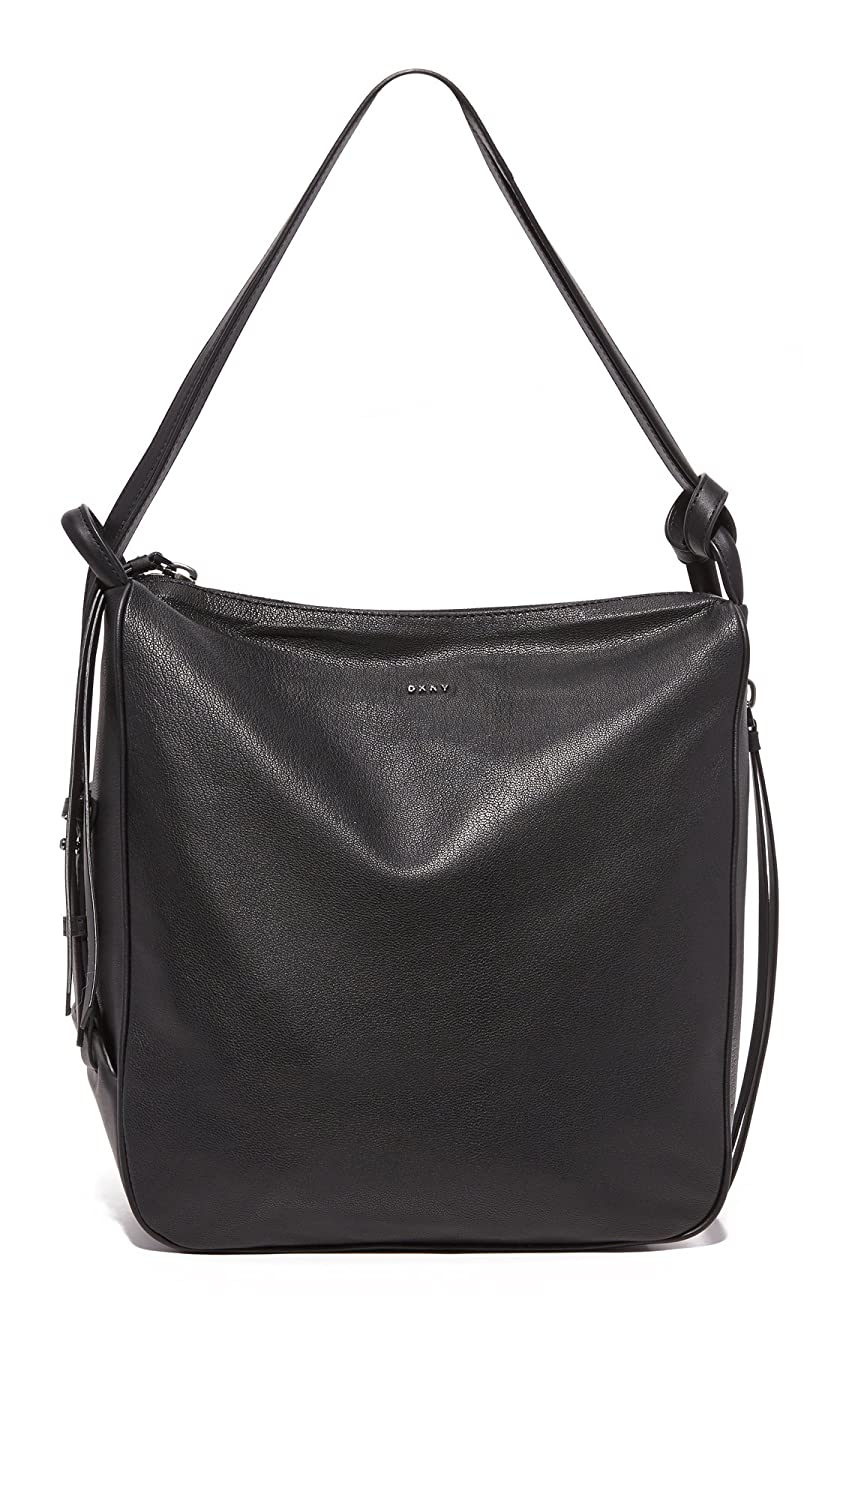 DKNY Women's Convertible Hobo Bag